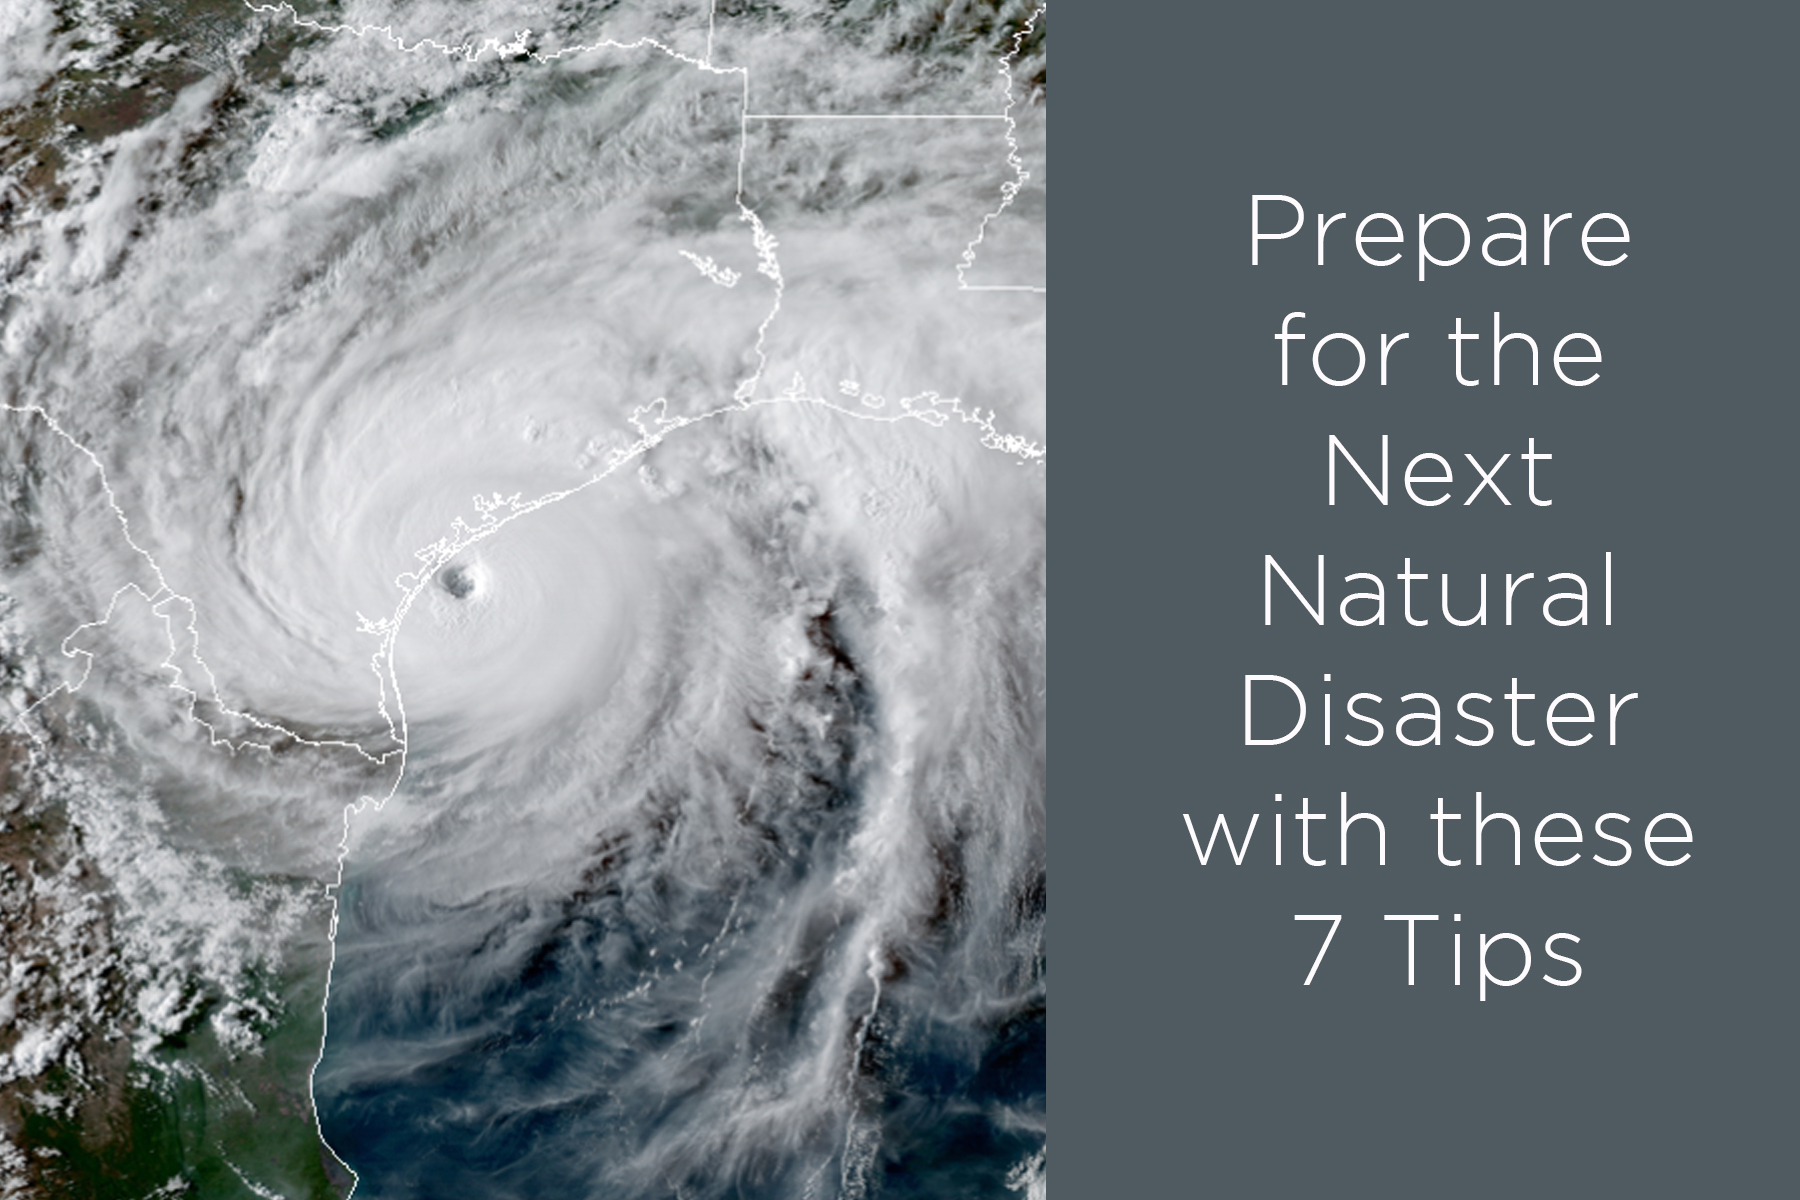 Prepare for the Next Natural Disaster with These 7 Tips